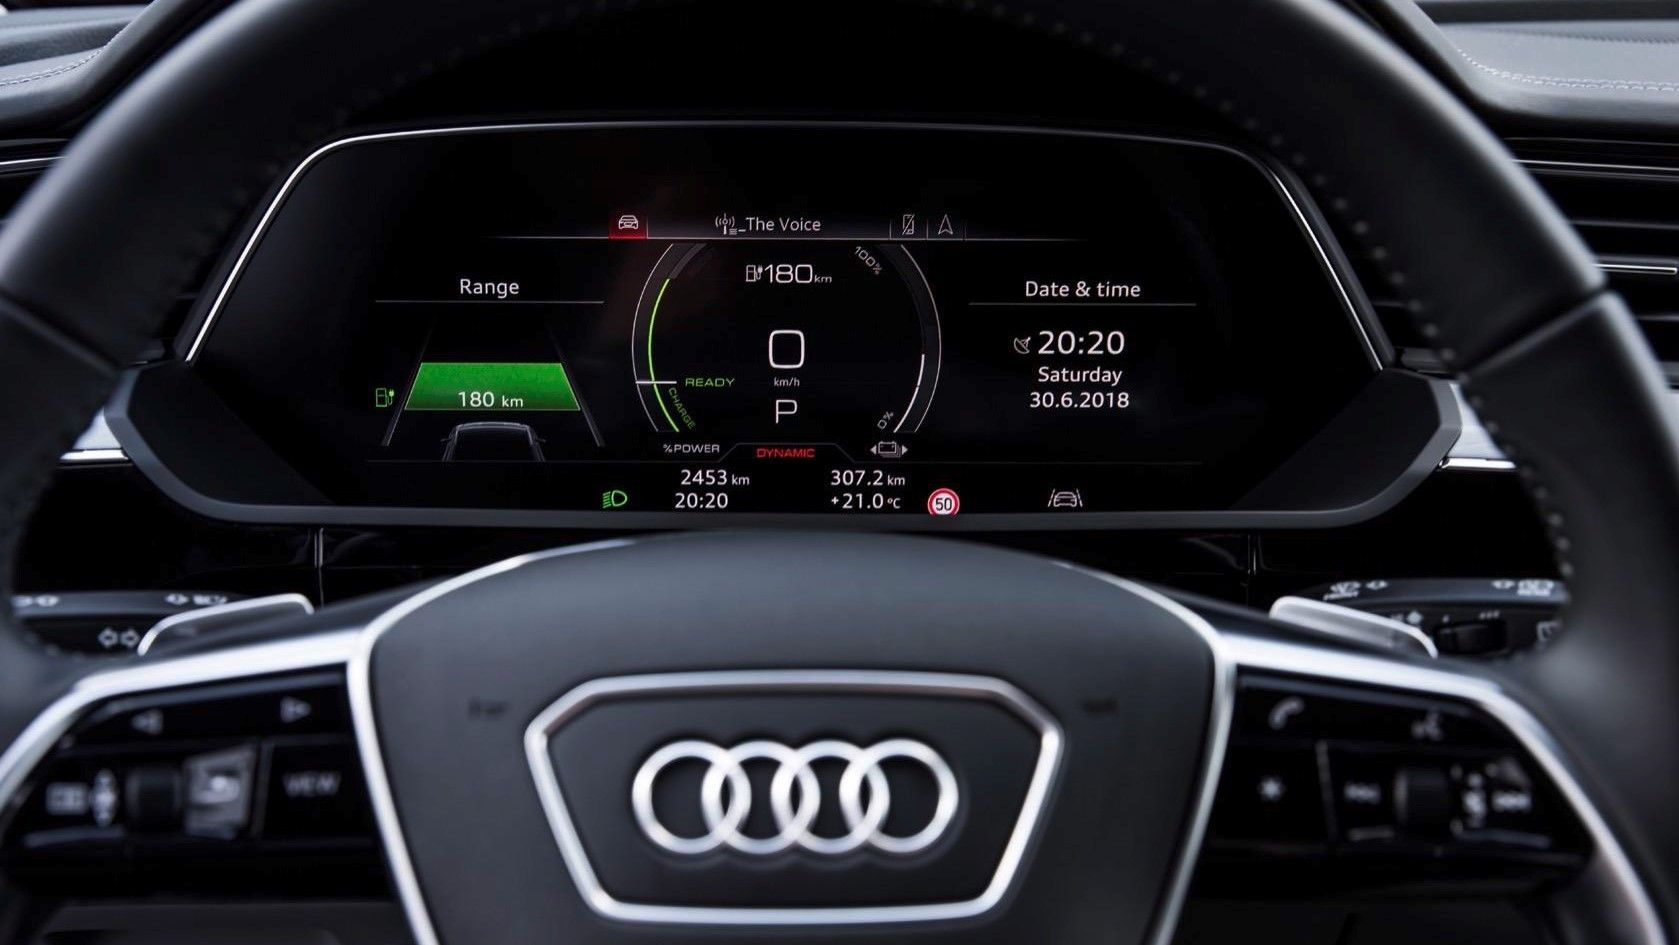 2020 Audi E-Tron Virtual Cockpit